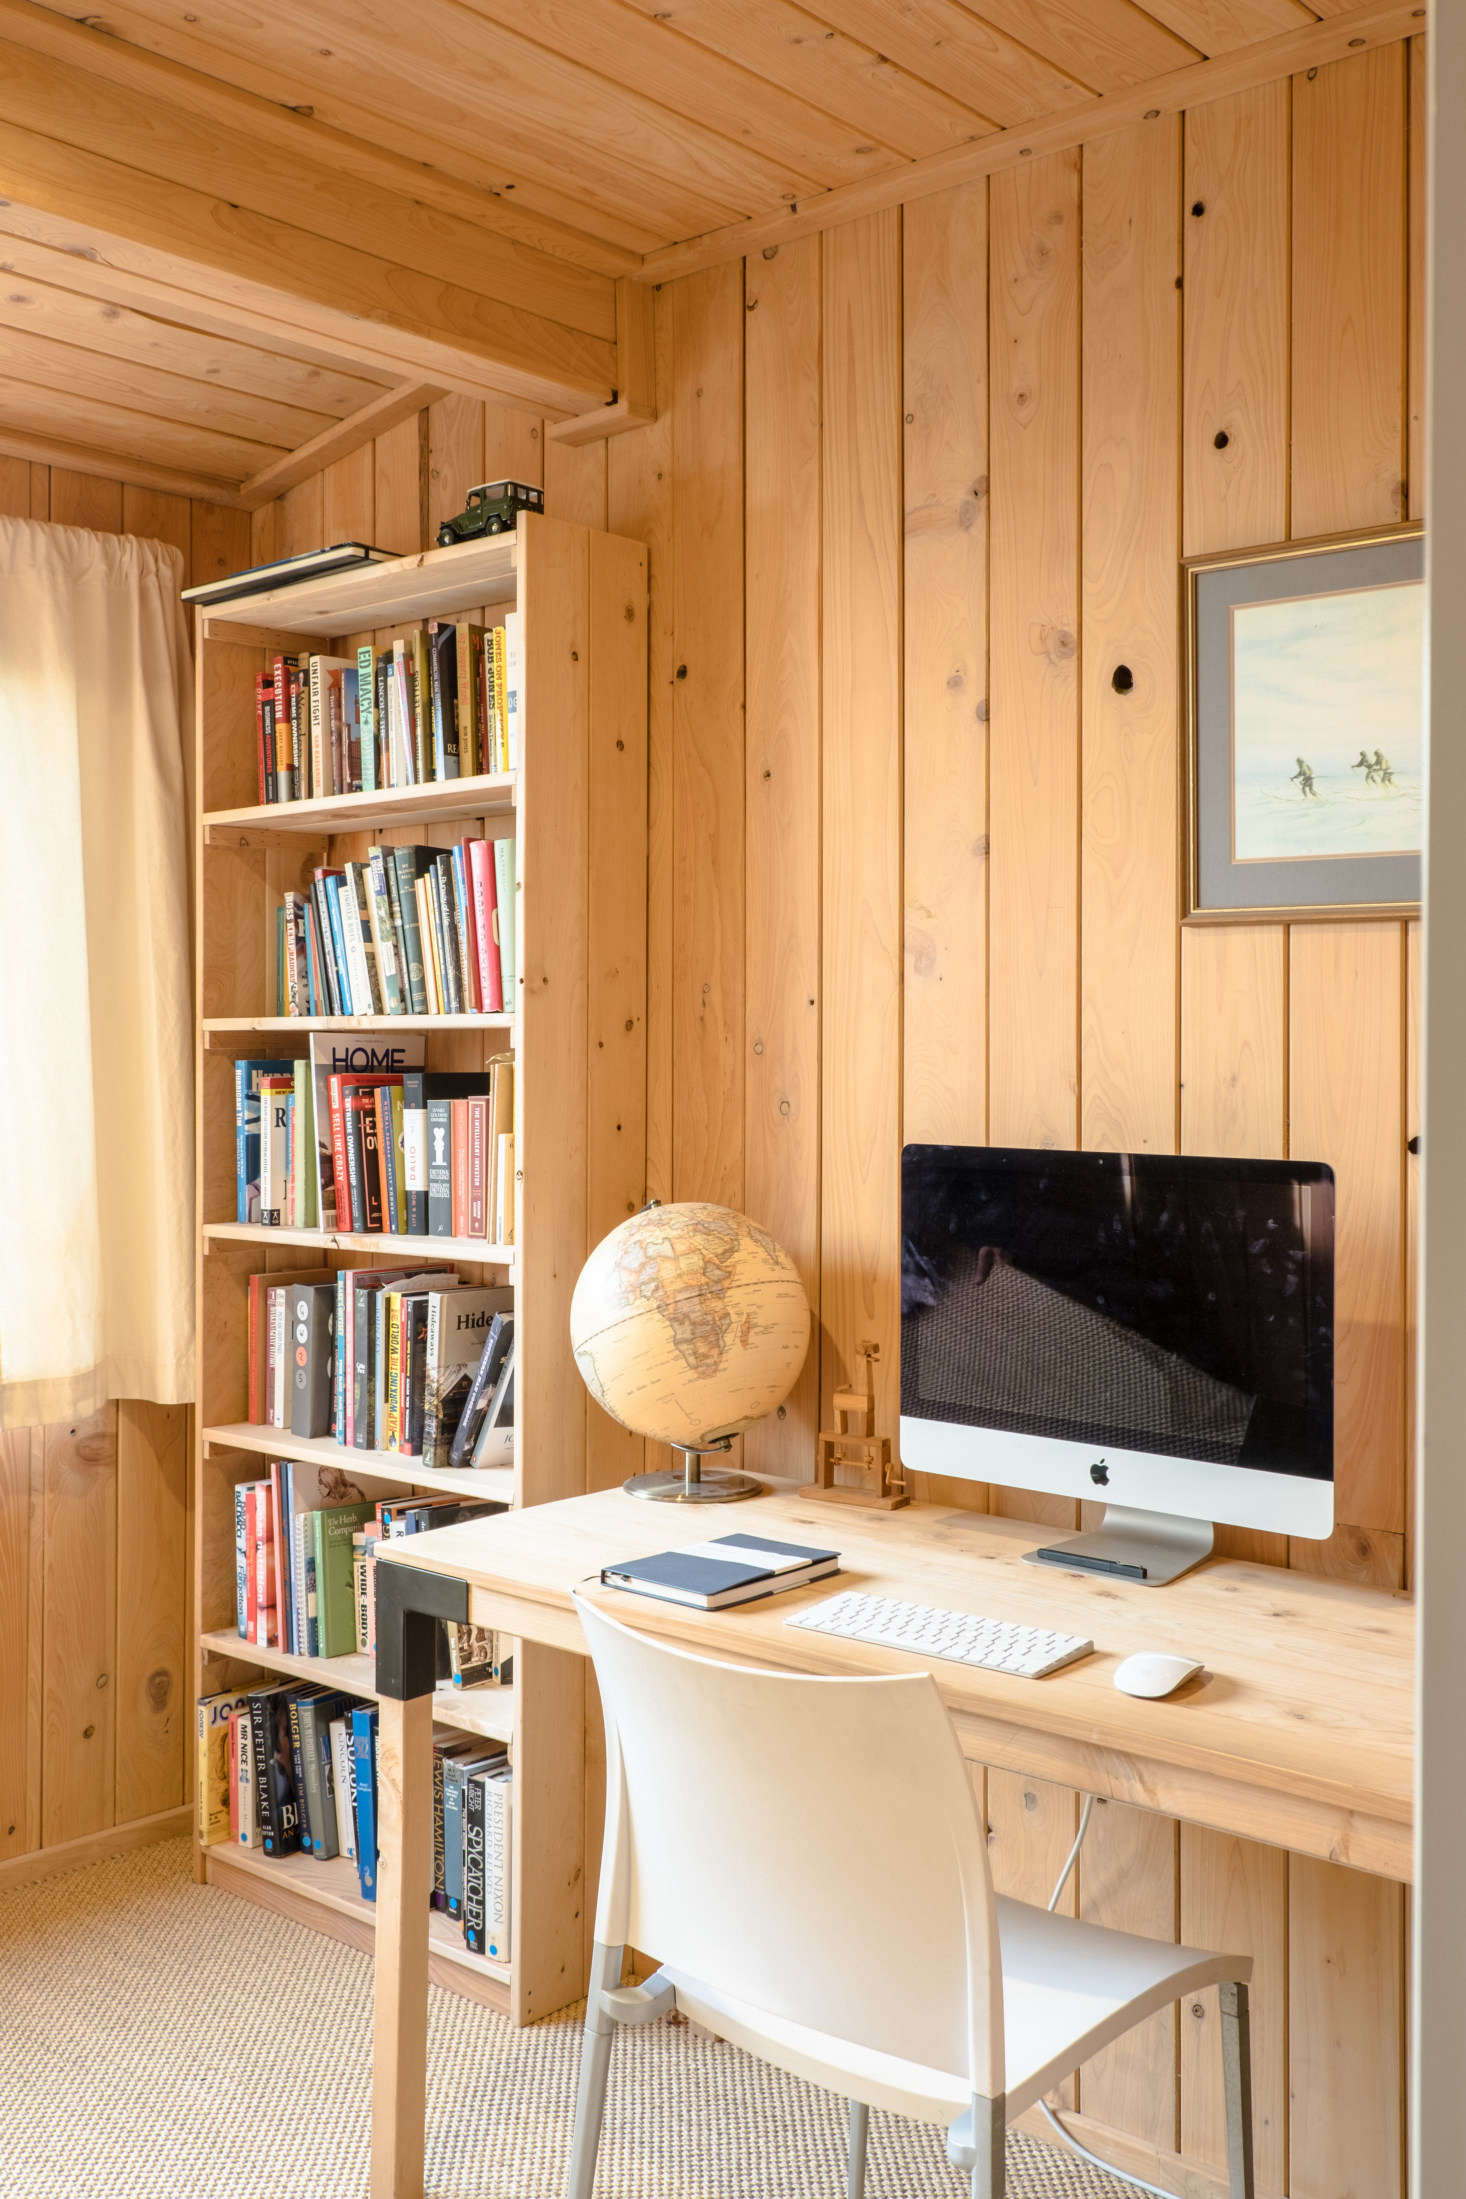 The fully paneled office has a desk and bookshelf that George fabricated from leftover macrocarpa exterior cladding. He says he